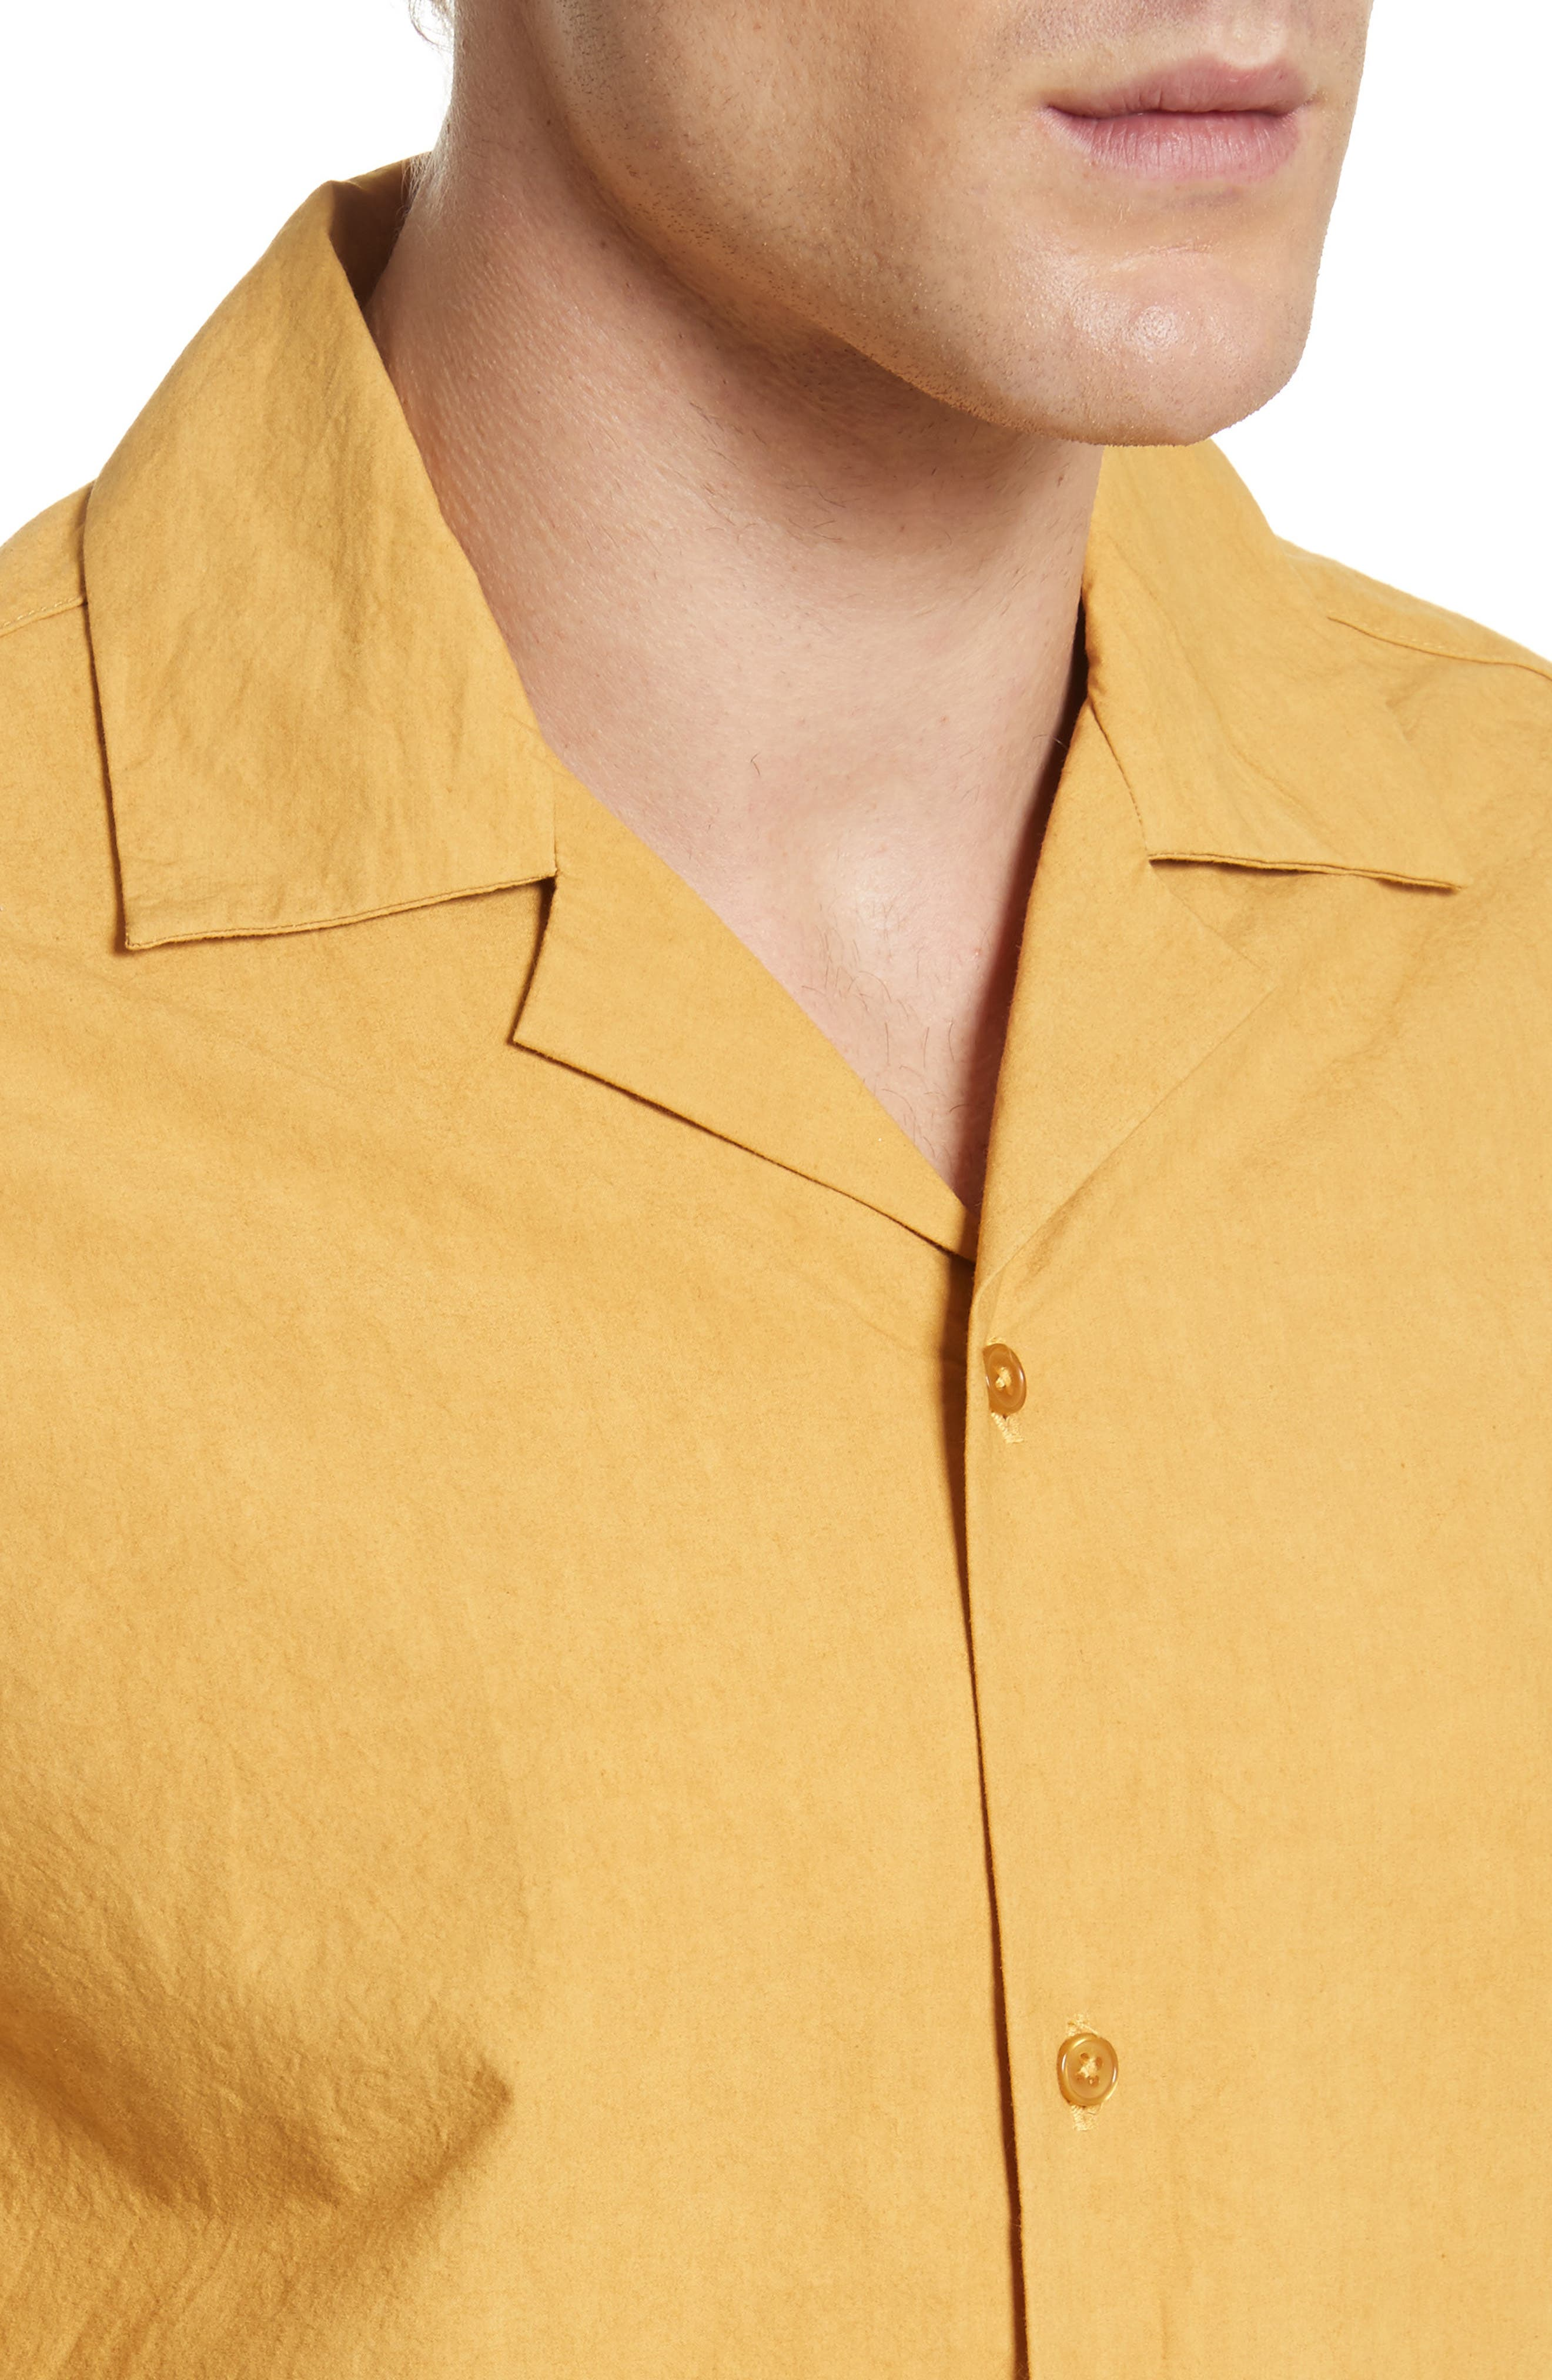 Canty Woven Camp Shirt,                             Alternate thumbnail 4, color,                             725